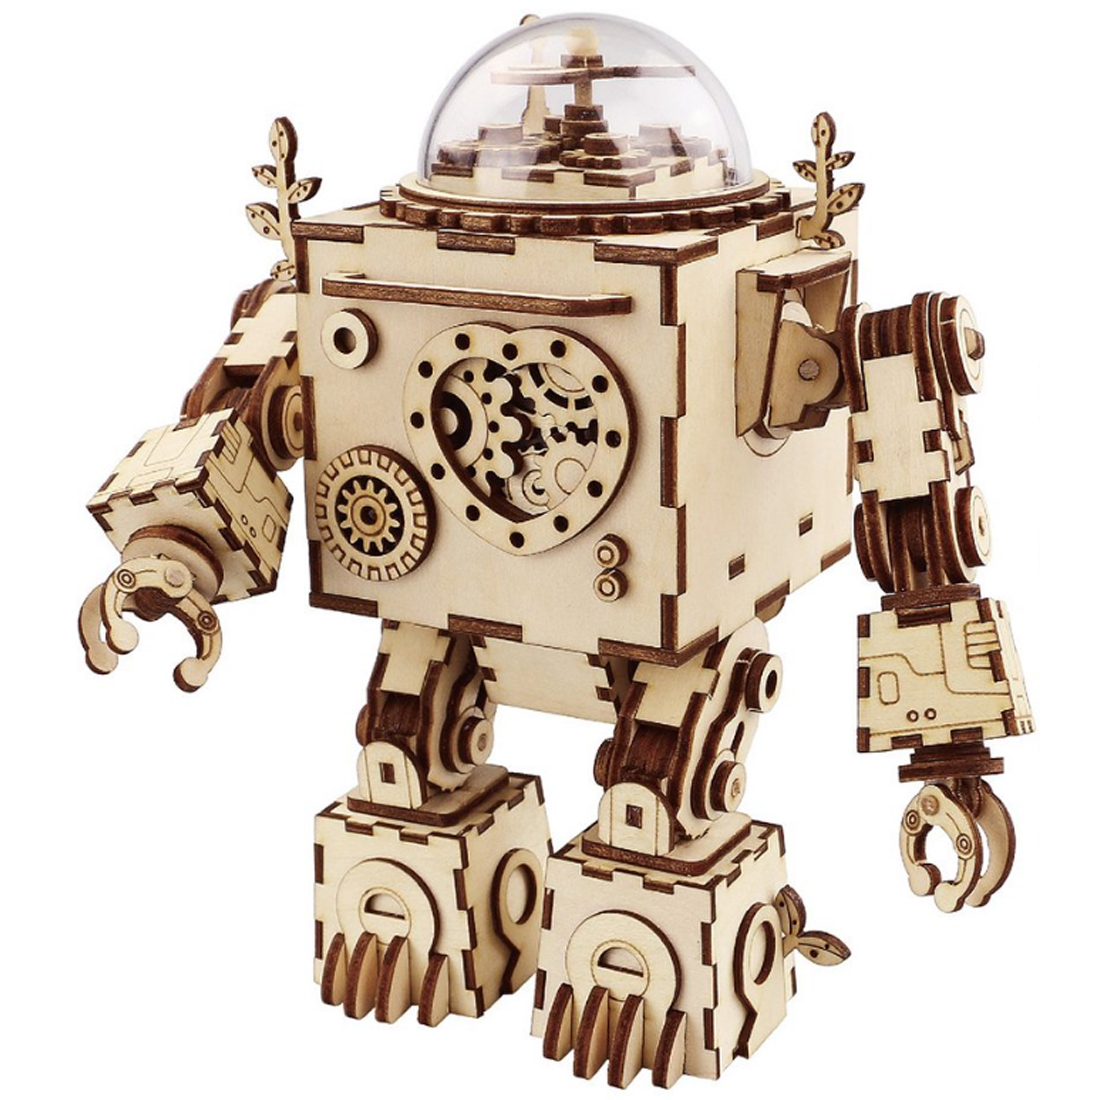 Surwish Robot Model Wooden Gear DIY 3D Puzzle Steampunk Music Box for Patience and Hands-on Ability Development- Burlywood diy wooden assembling brontosaurus model burlywood